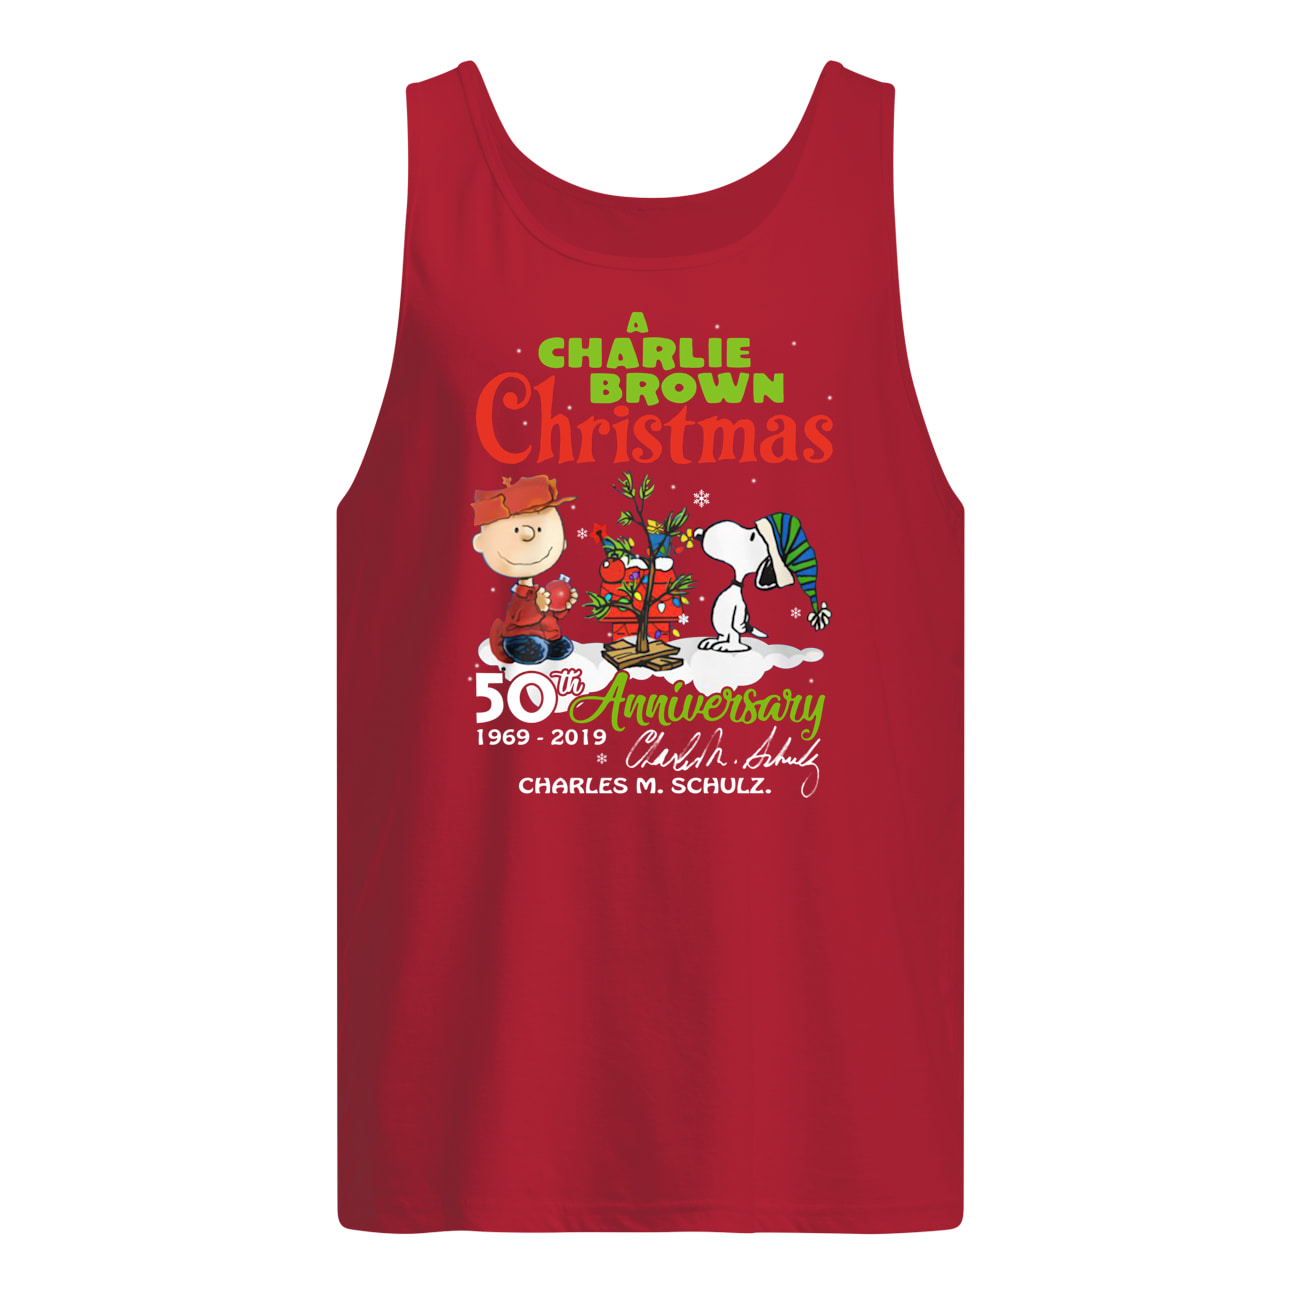 A charlie brown christmas 50th anniversary tank top